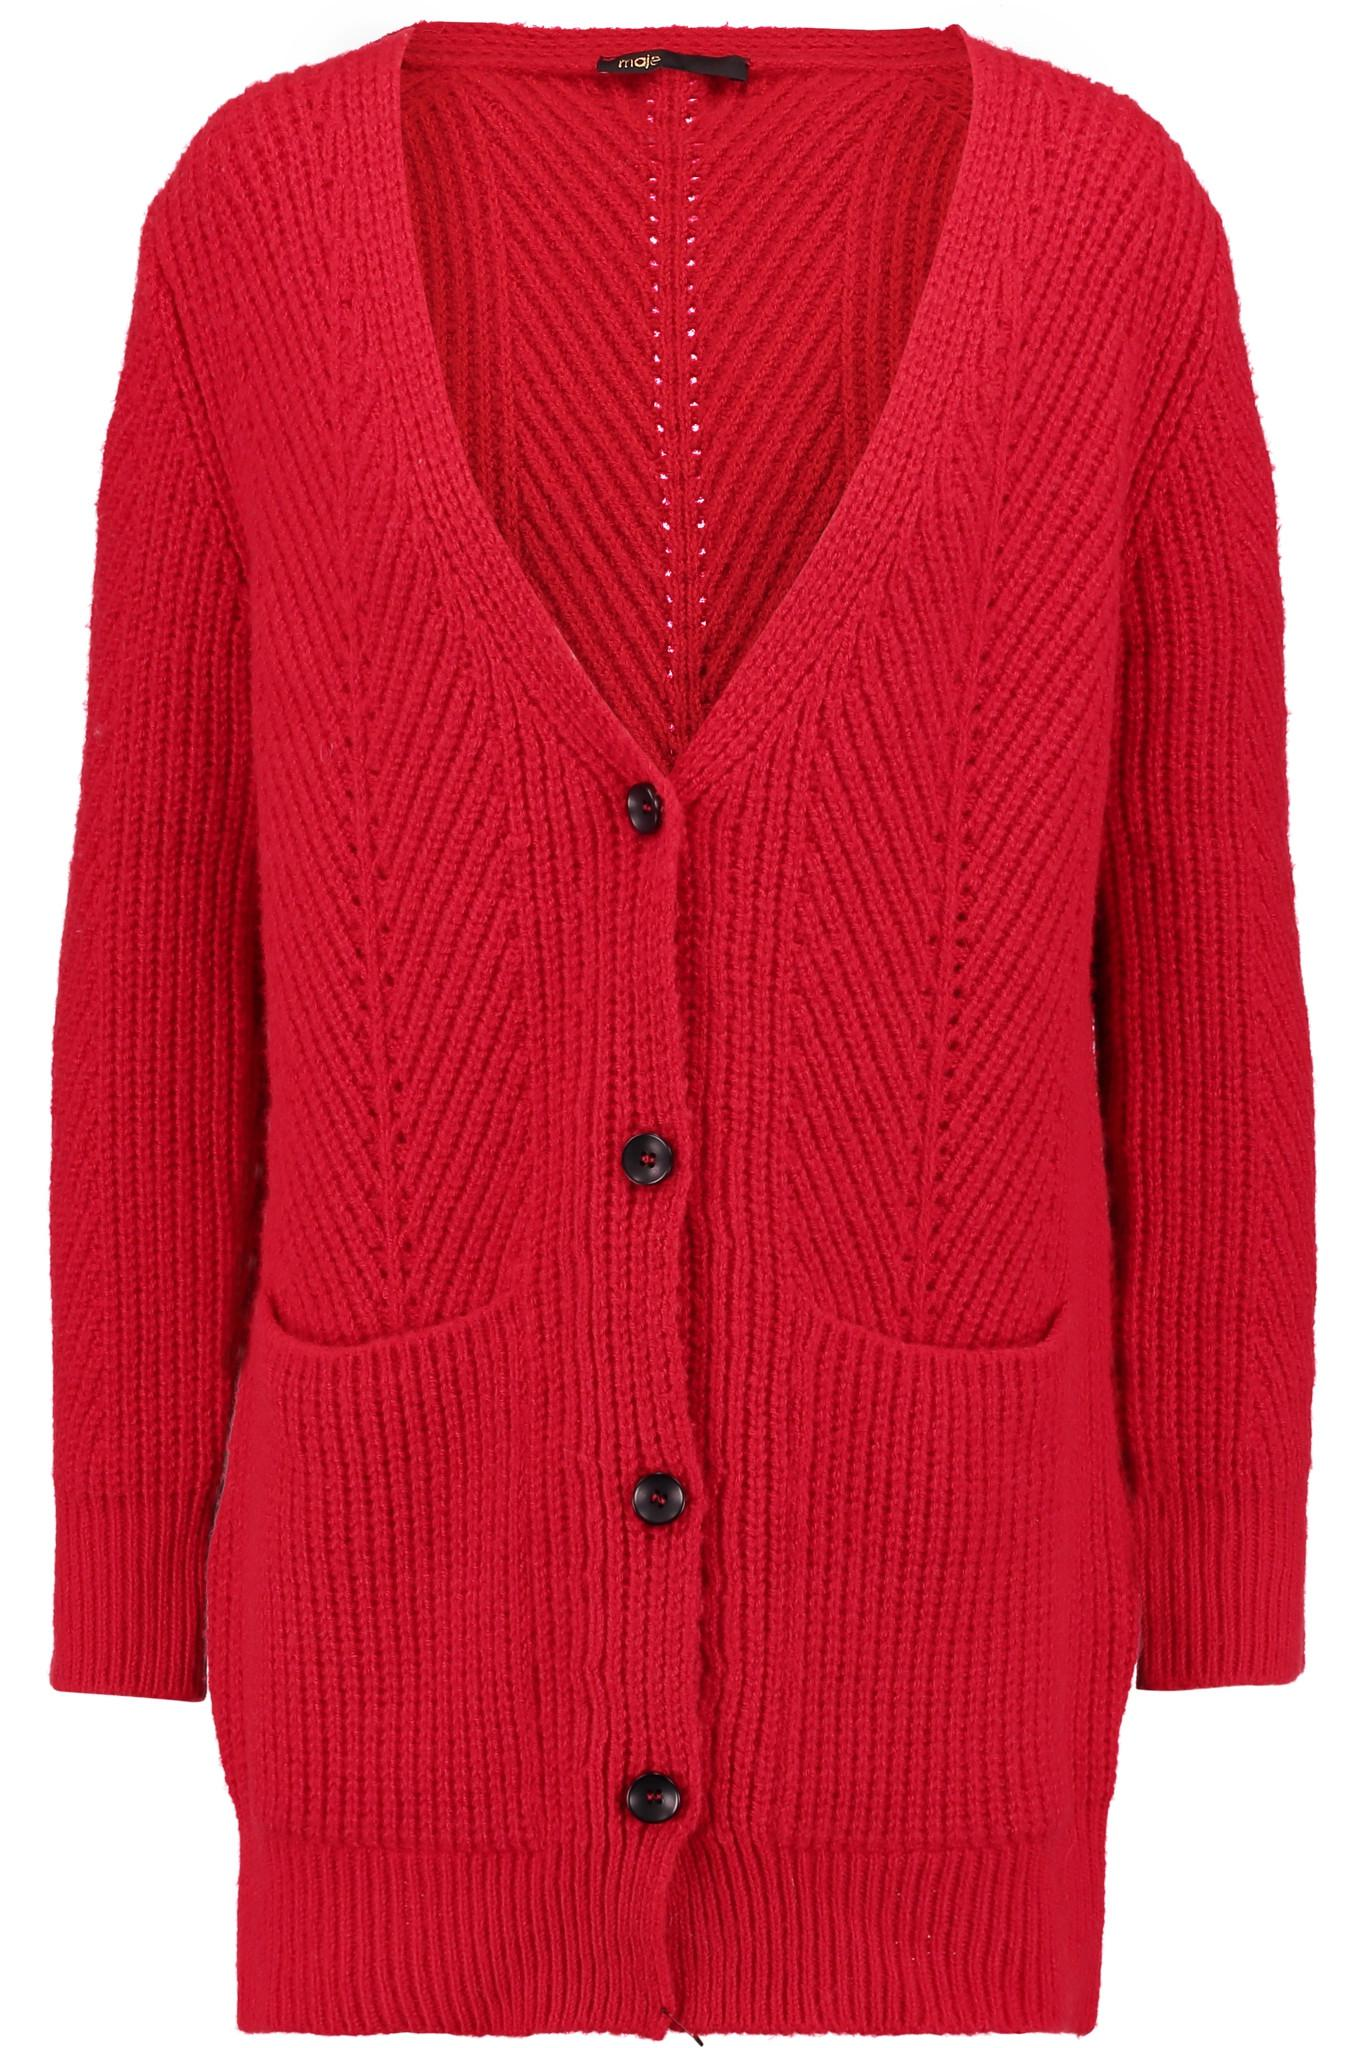 Maje Cable-knit Cardigan in Red | Lyst